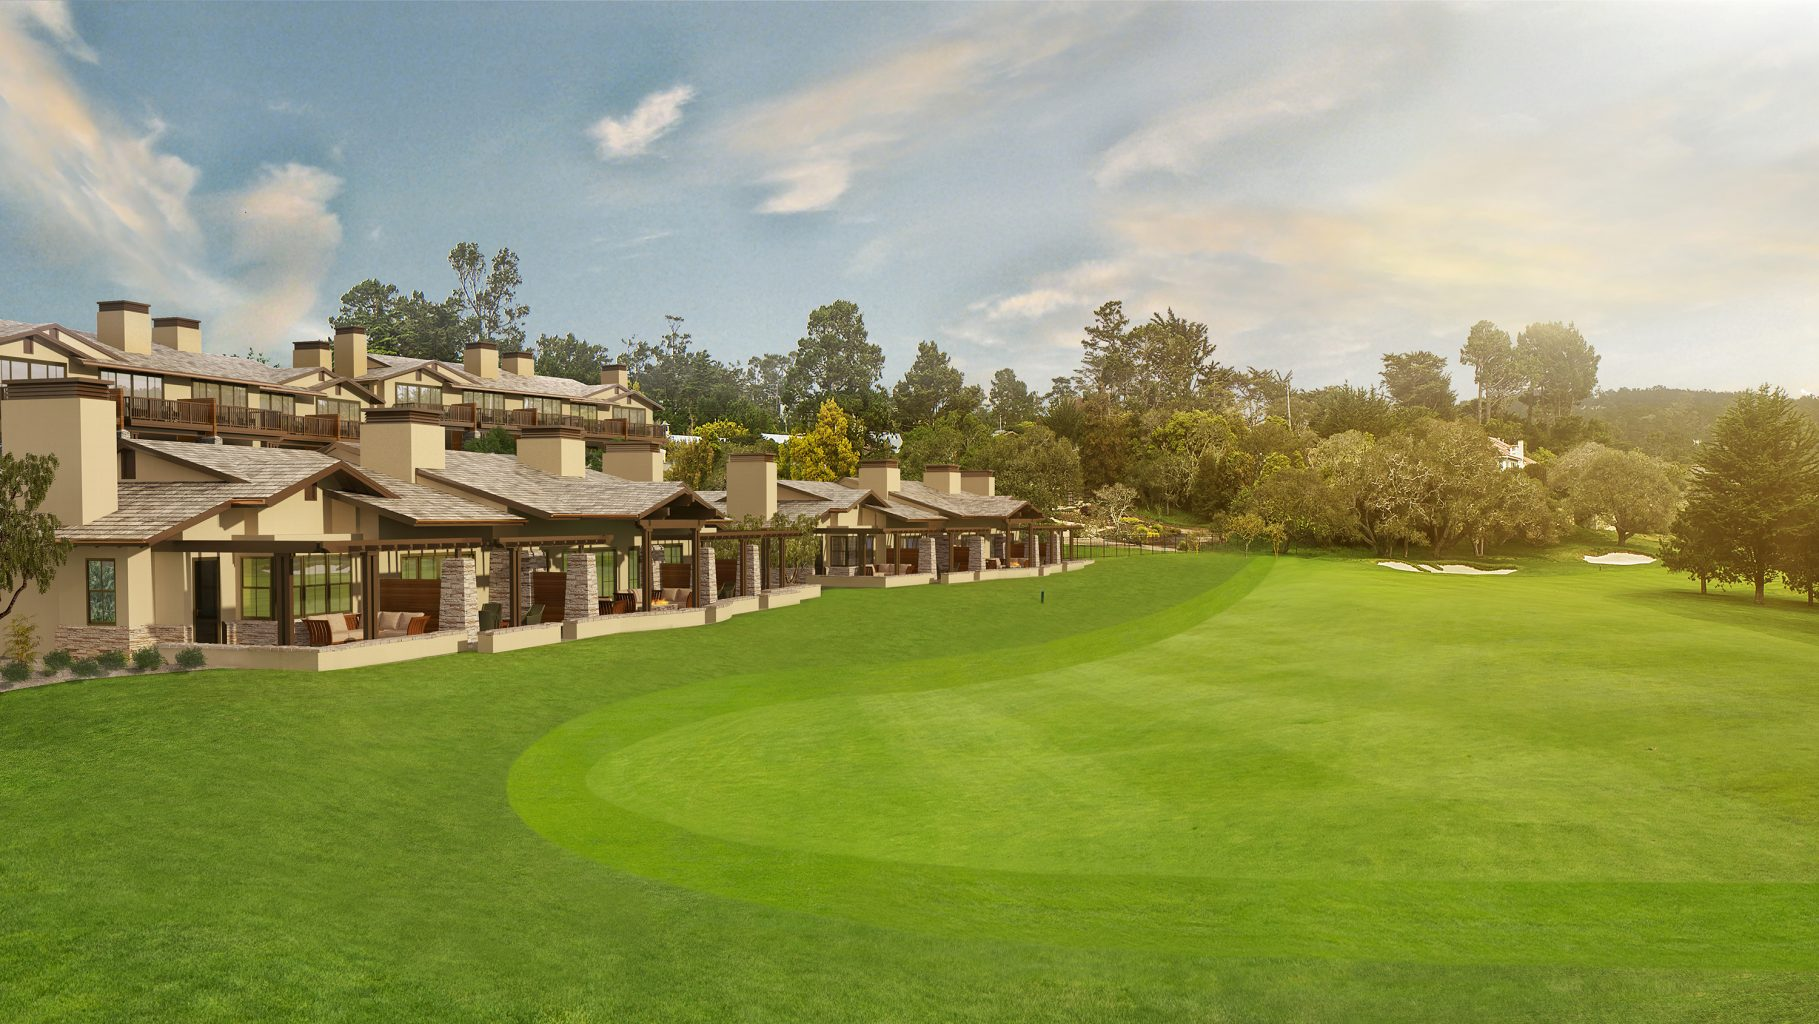 Introducing a New Experience at Pebble Beach: Fairway One ...